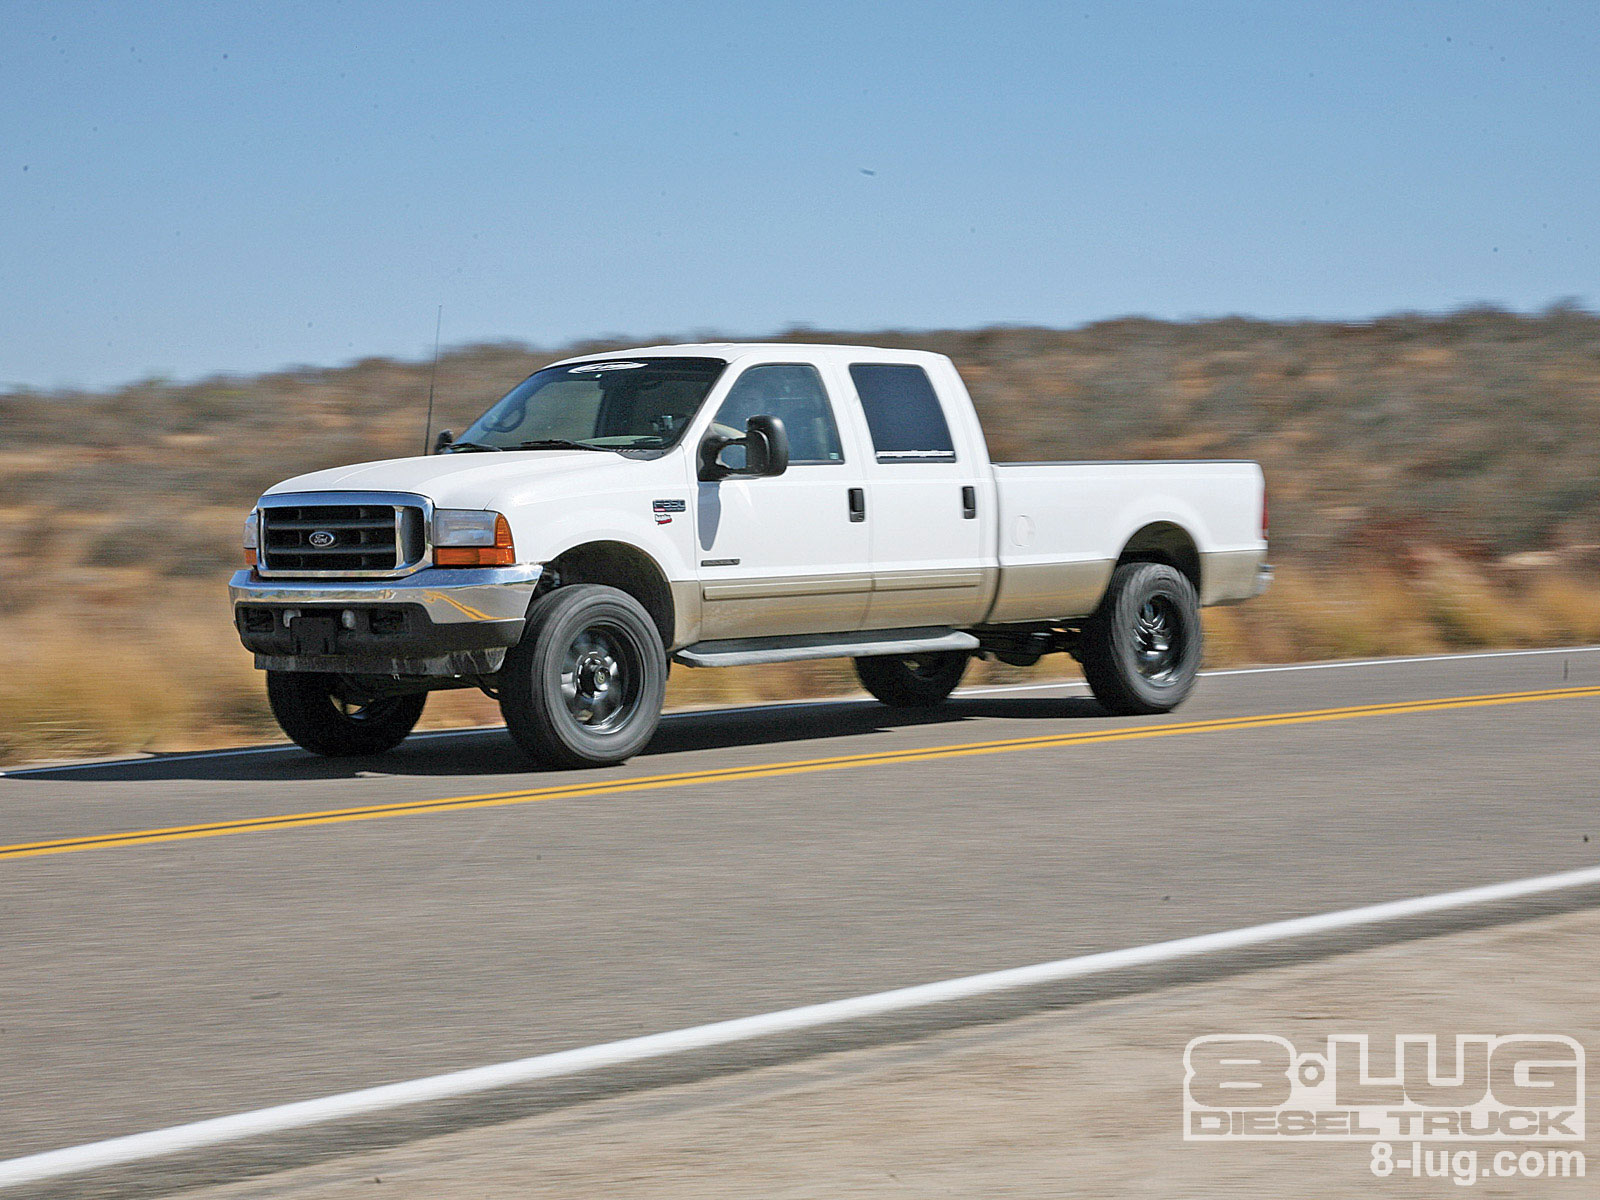 medium resolution of 0902 8l 01 pro comp suspension on ford f350 ford f350